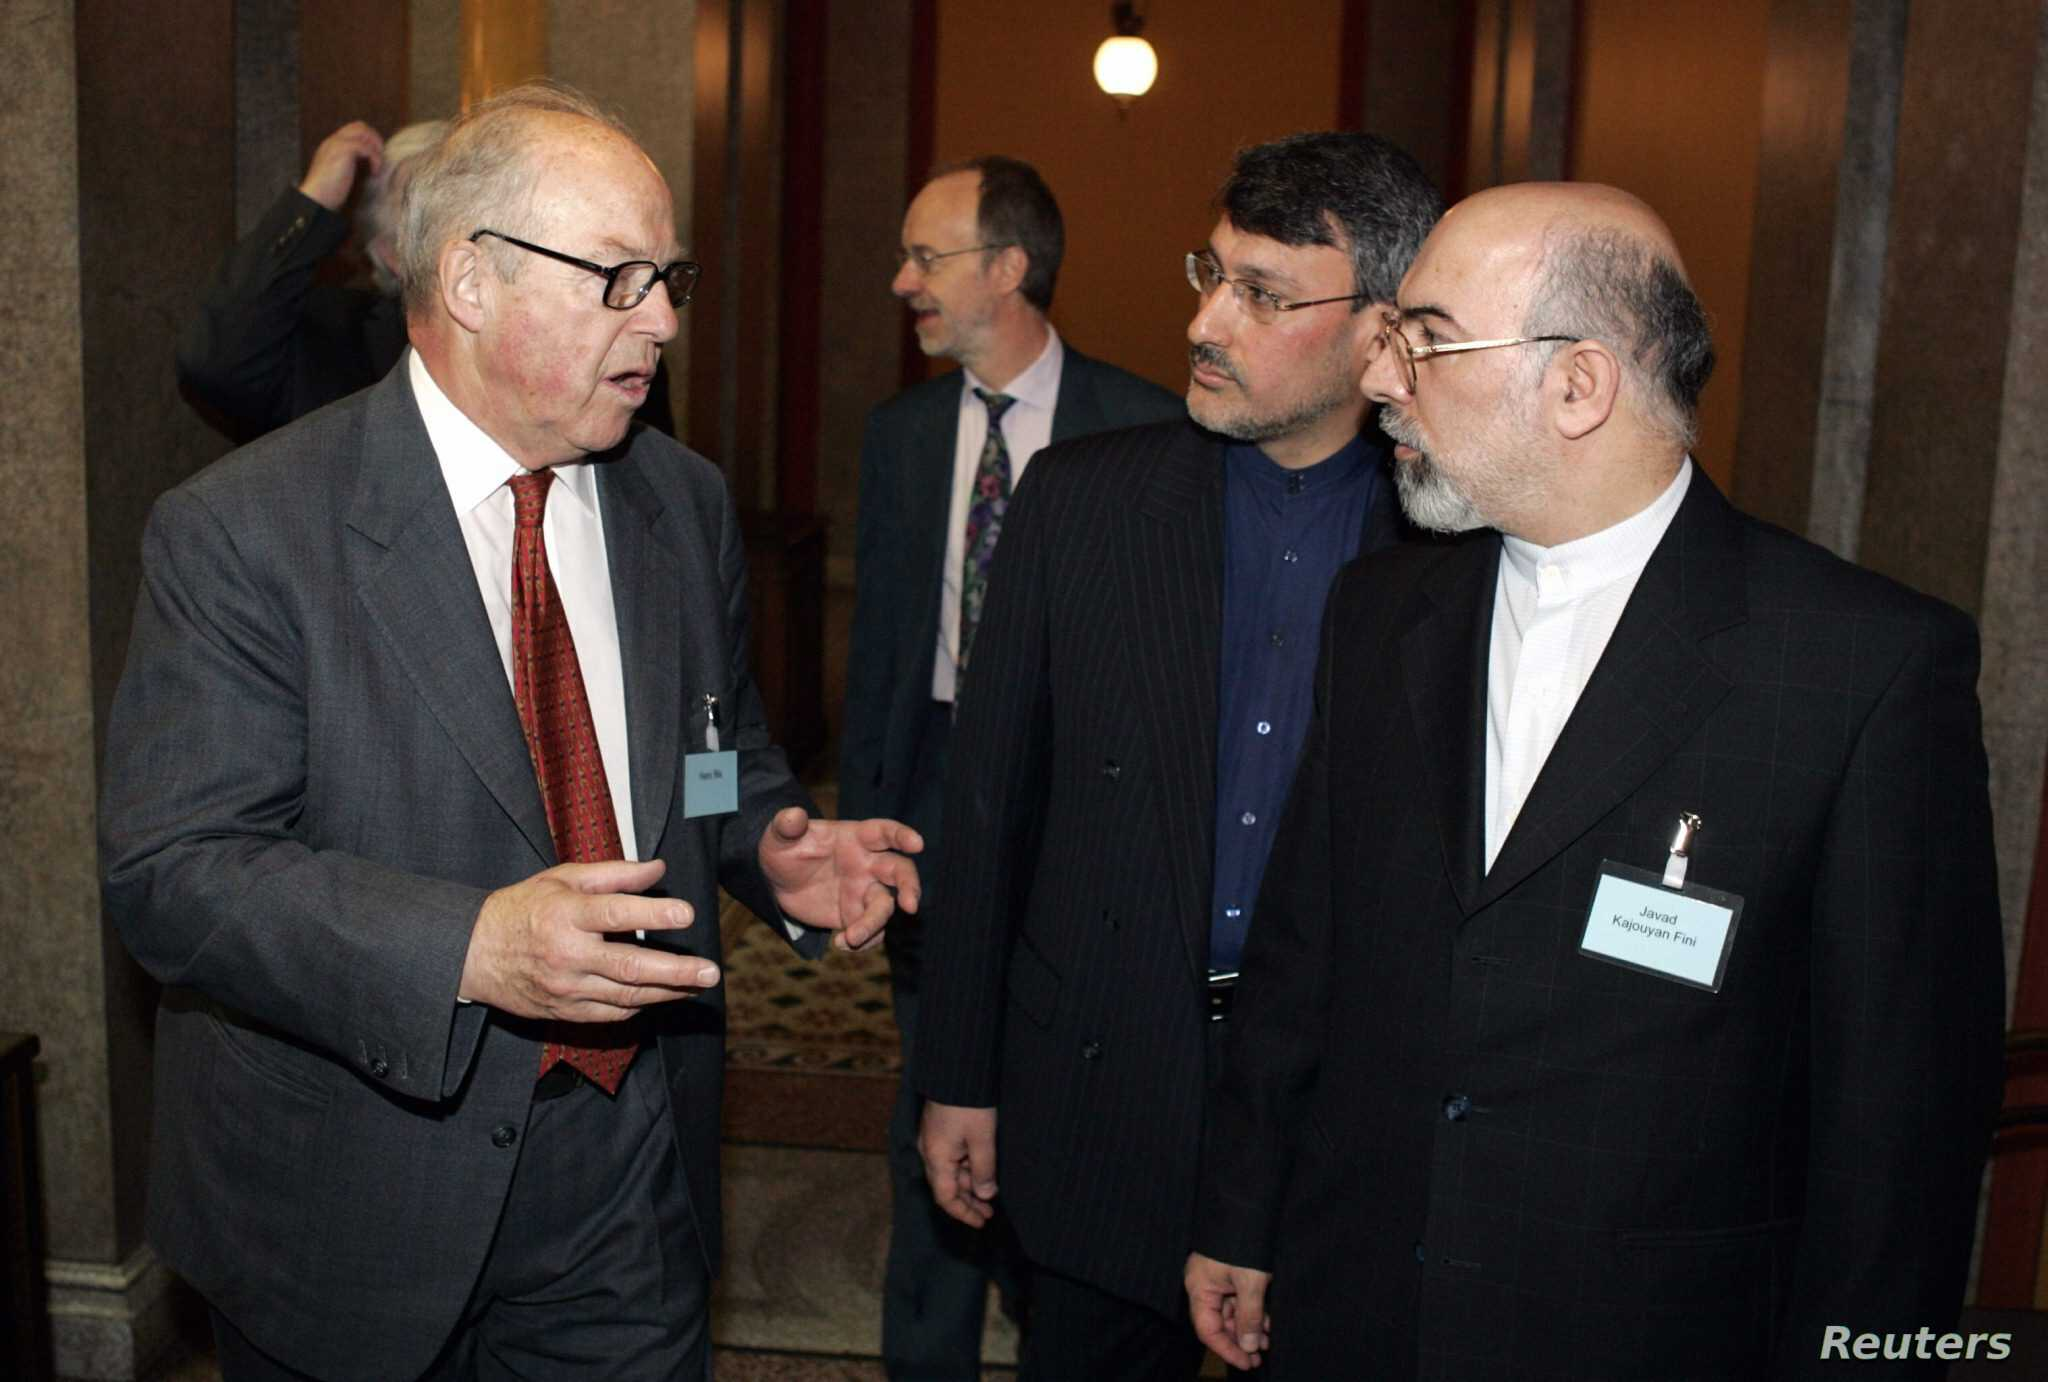 Iran's Ambassador to Finland Javad Kajoyan Fini and the Director of the Ministry of Foreign Affairs of Iran Hamid Baeidinejad (second from right) talk to the former chief U.N. Weapons inspector Hans Blix in Helsinki, April 7, 2005..